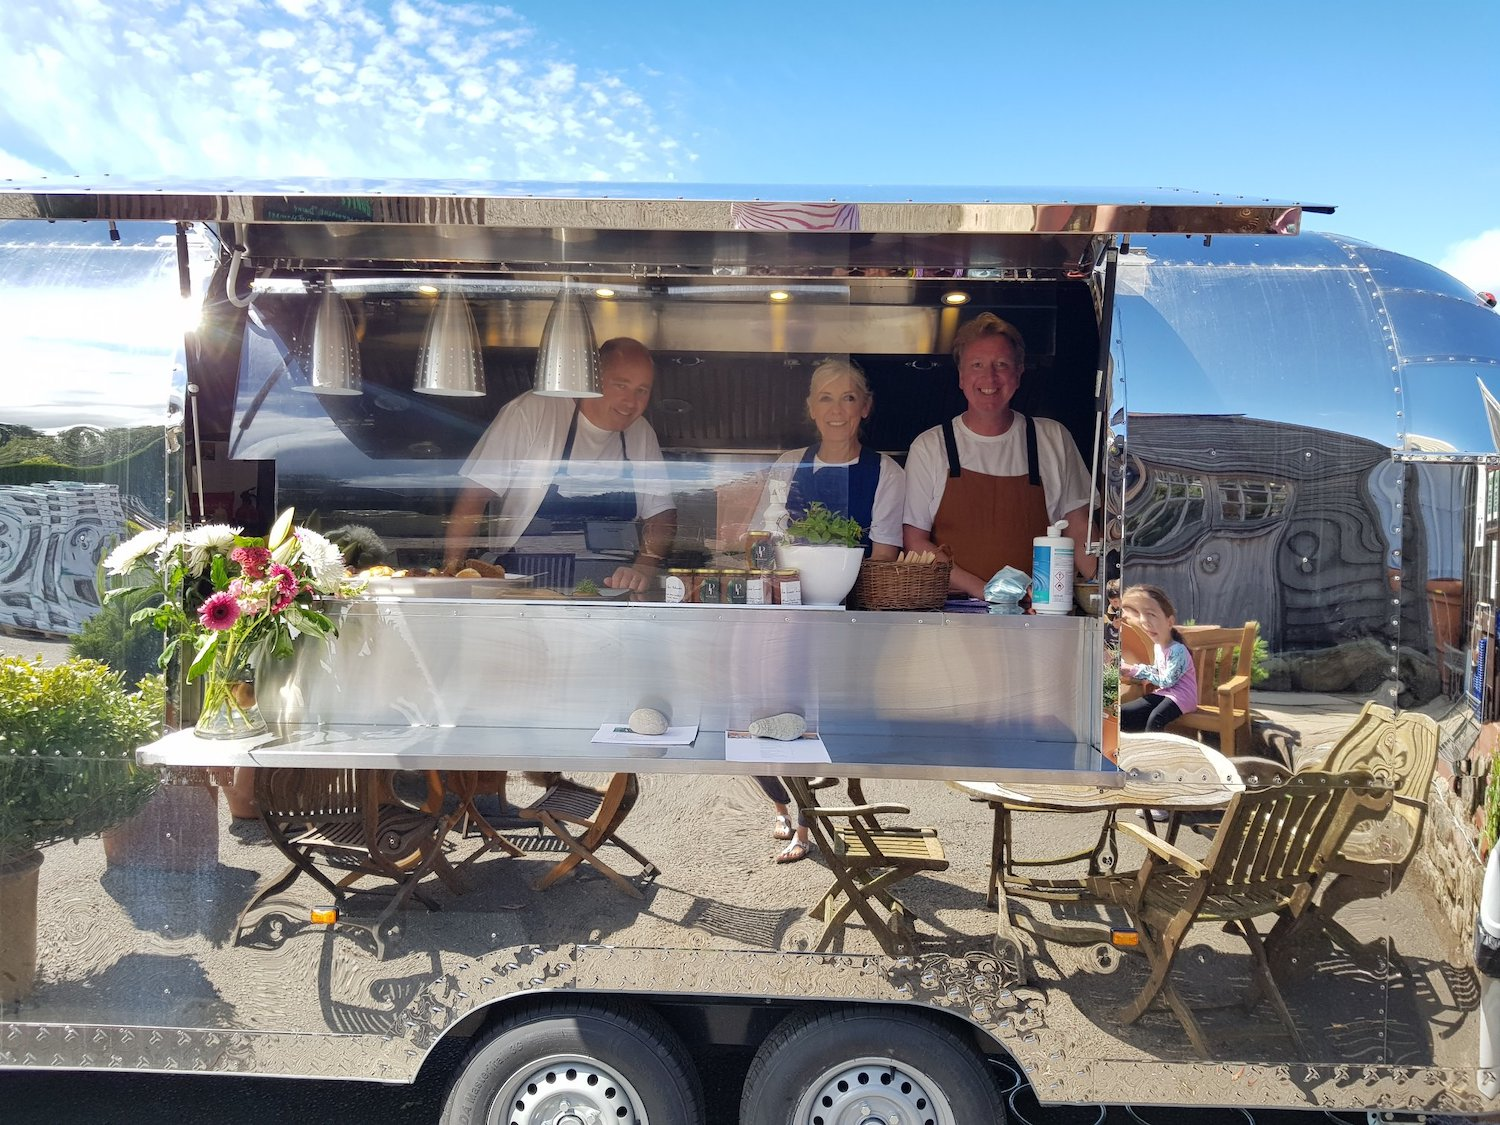 Food Business Concession Trailers